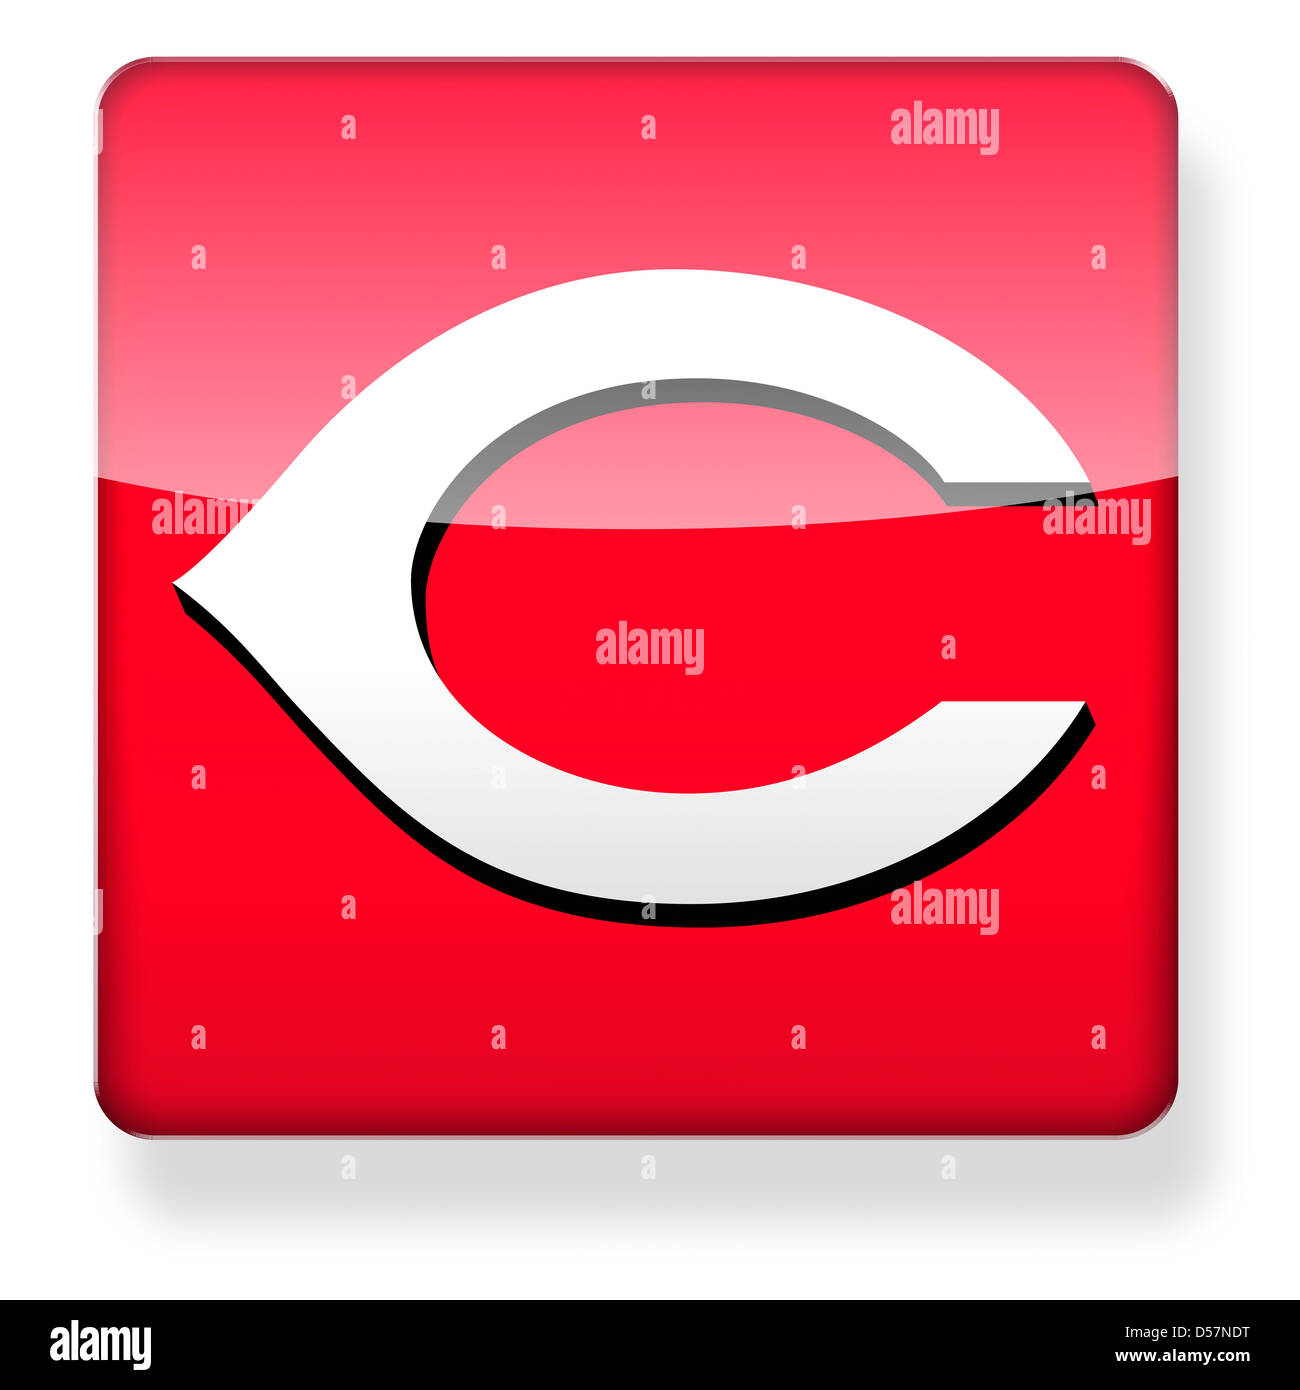 Cincinnati Reds baseball cap logo as an app icon. Clipping path included. - Stock Image